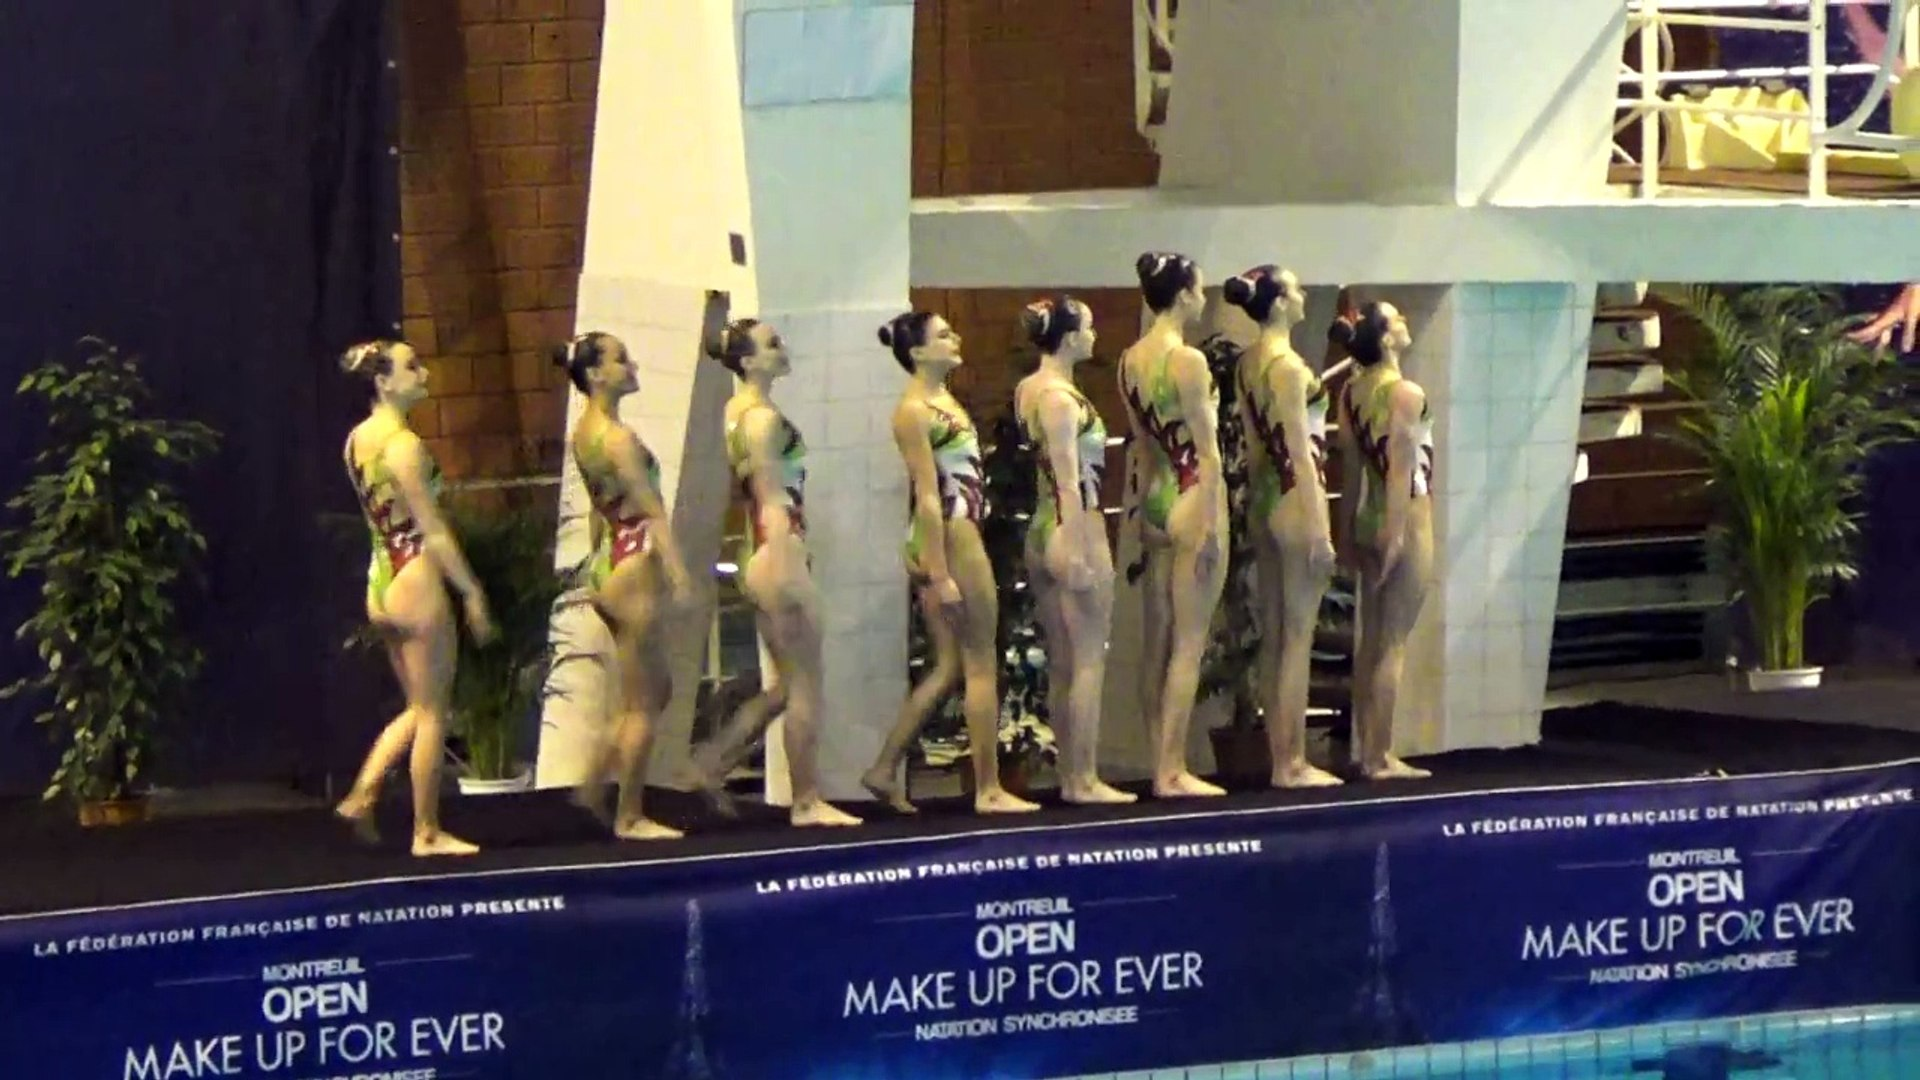 GREAT BRITAIN technical team - 2017 Open Make up for ever